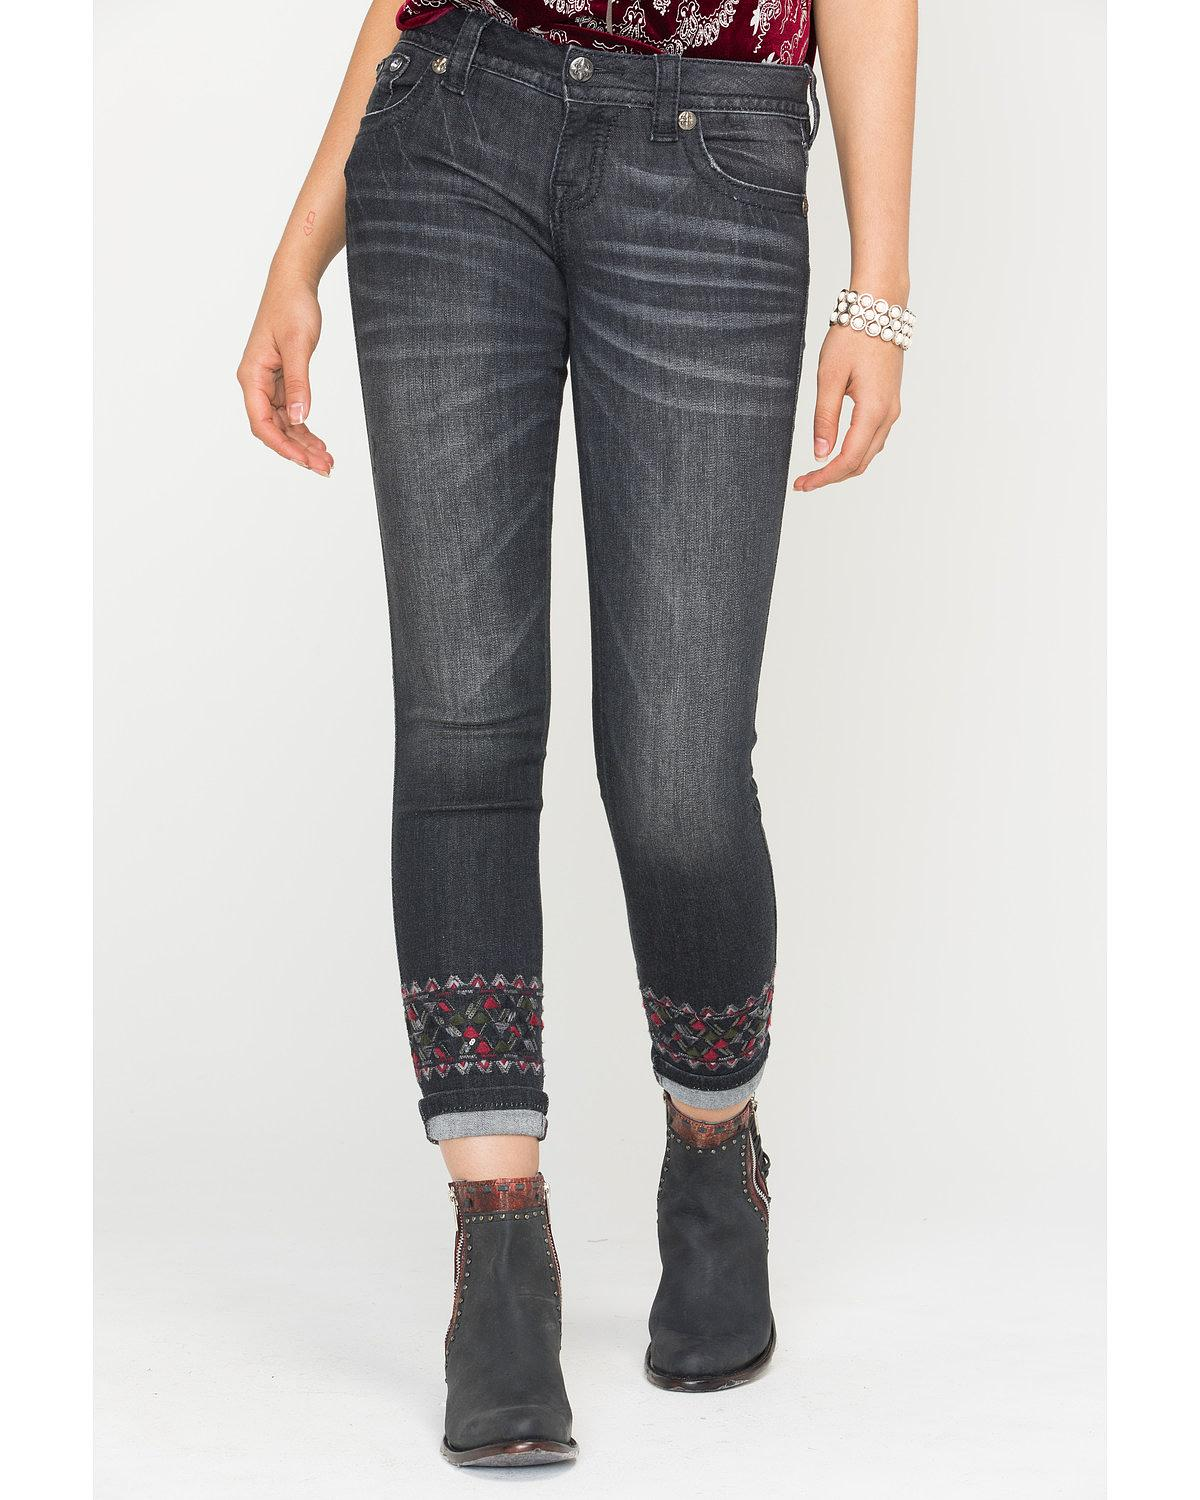 Miss Me Women's Distressed Skinny Cuffs Jeans - JP7713 BLK 29